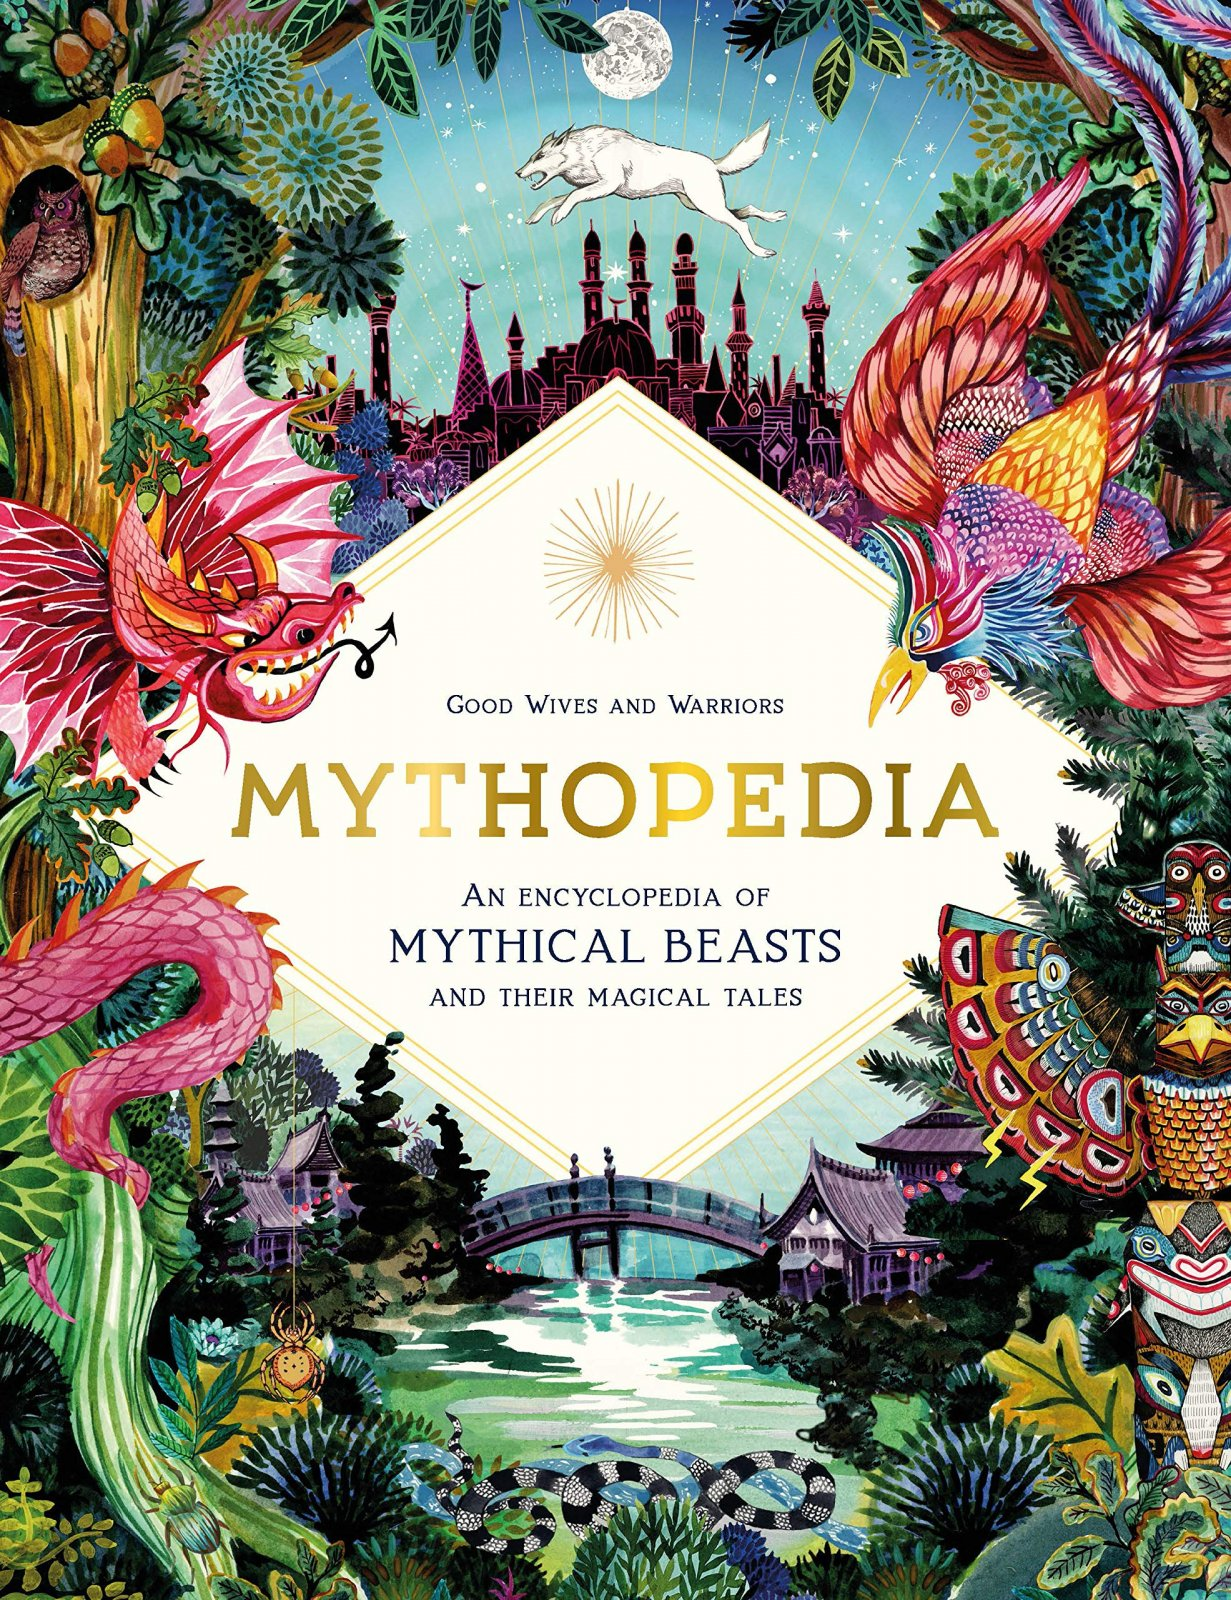 Mythopedia - An Encyclopedia of Mythical Beasts and Their Magical Tales by Good Wives and Warriors